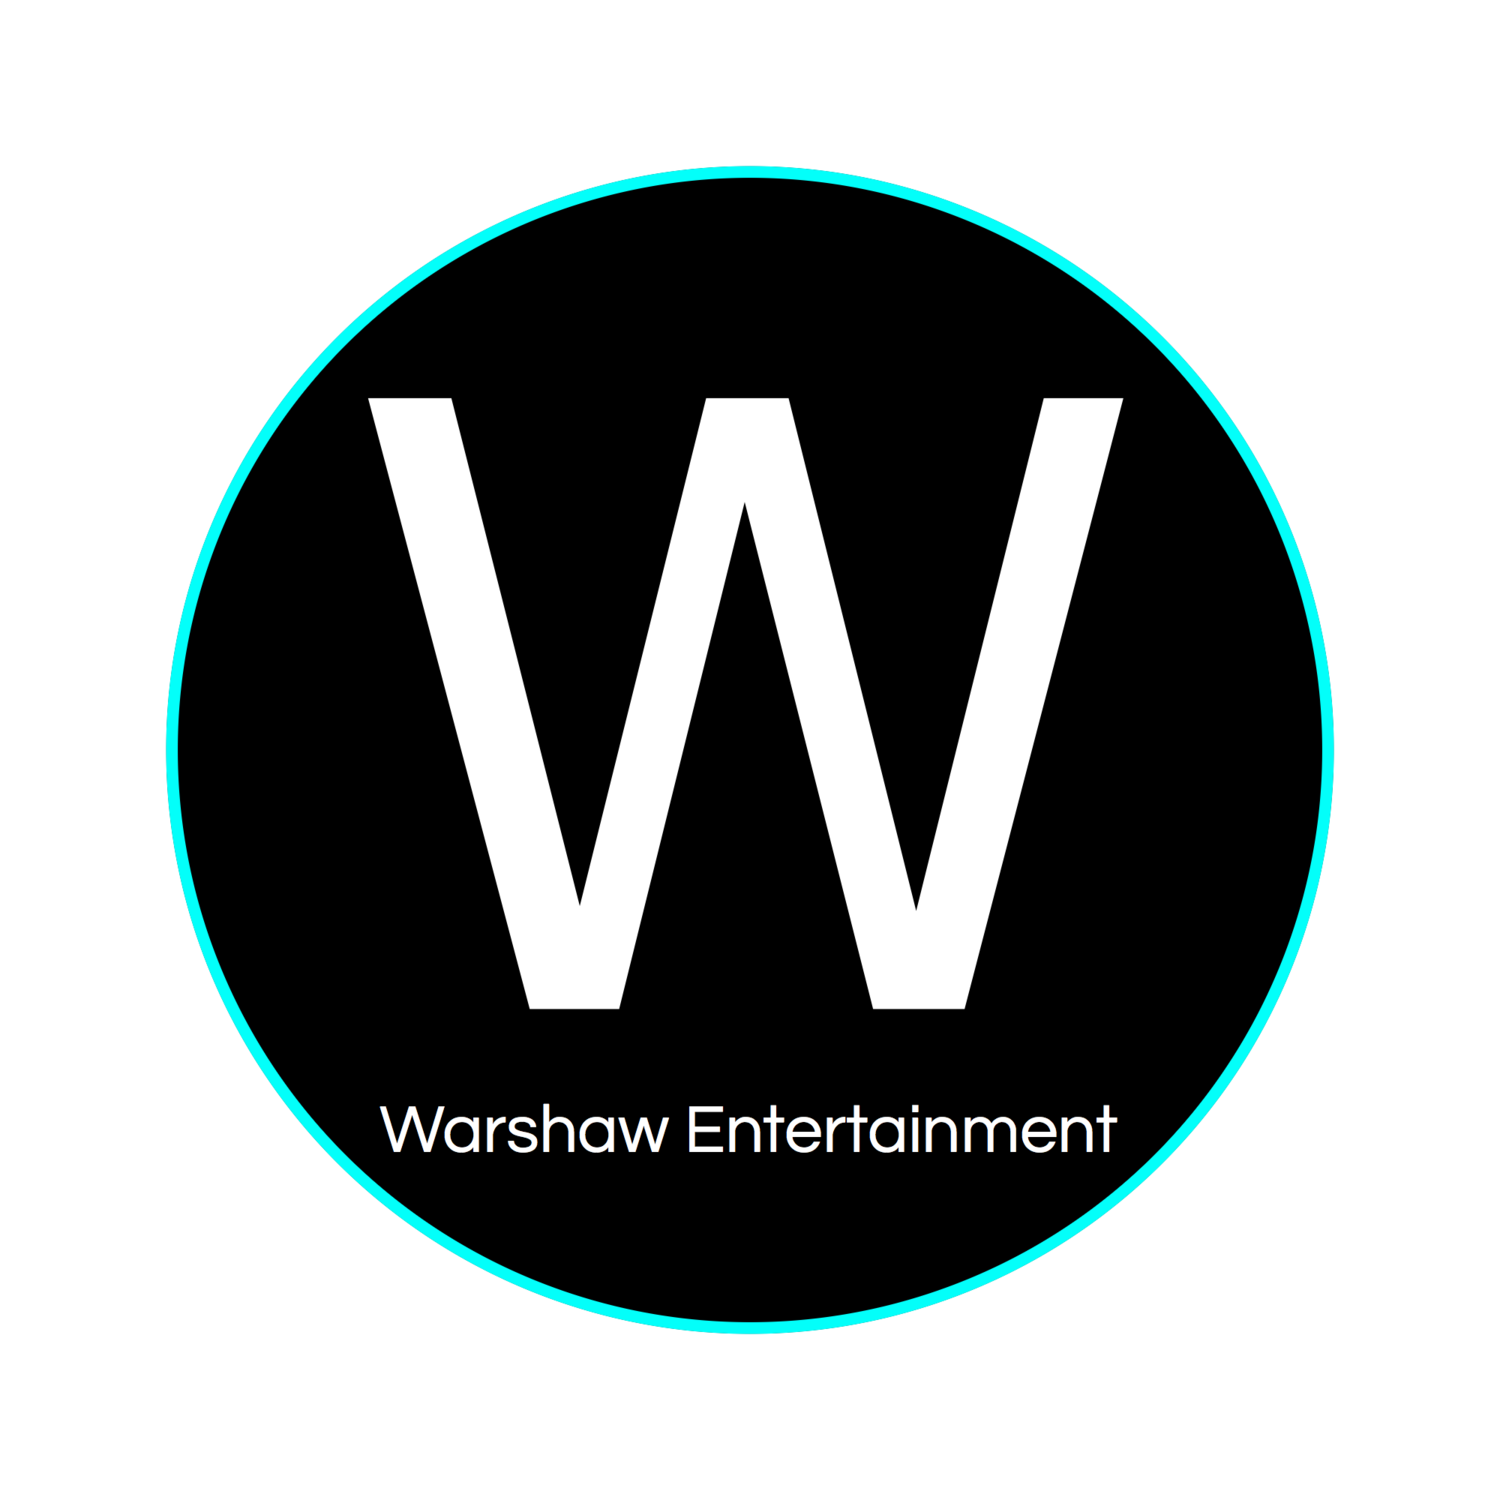 Warshaw Entertainment